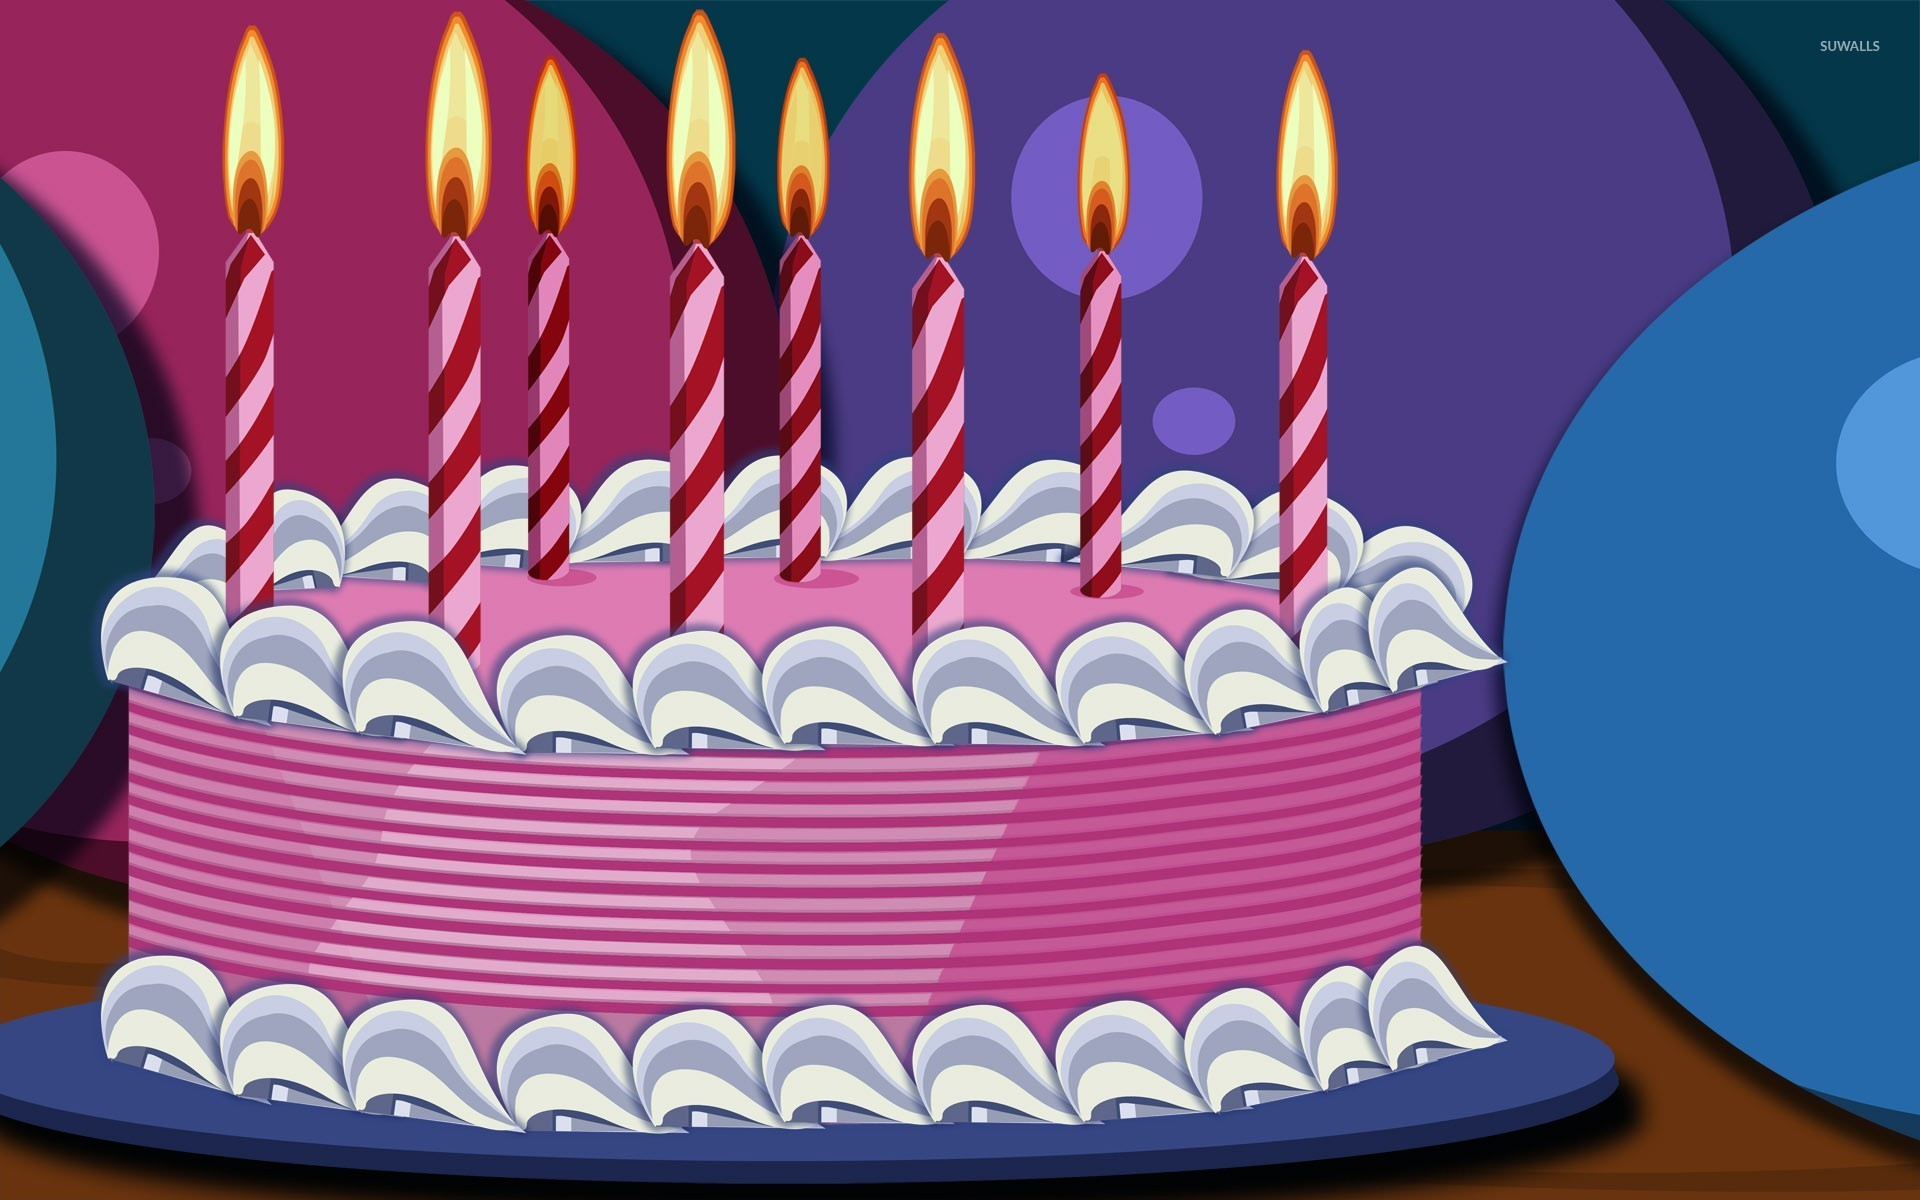 Birthday Cakes With Candles And Flowers wallpaper.